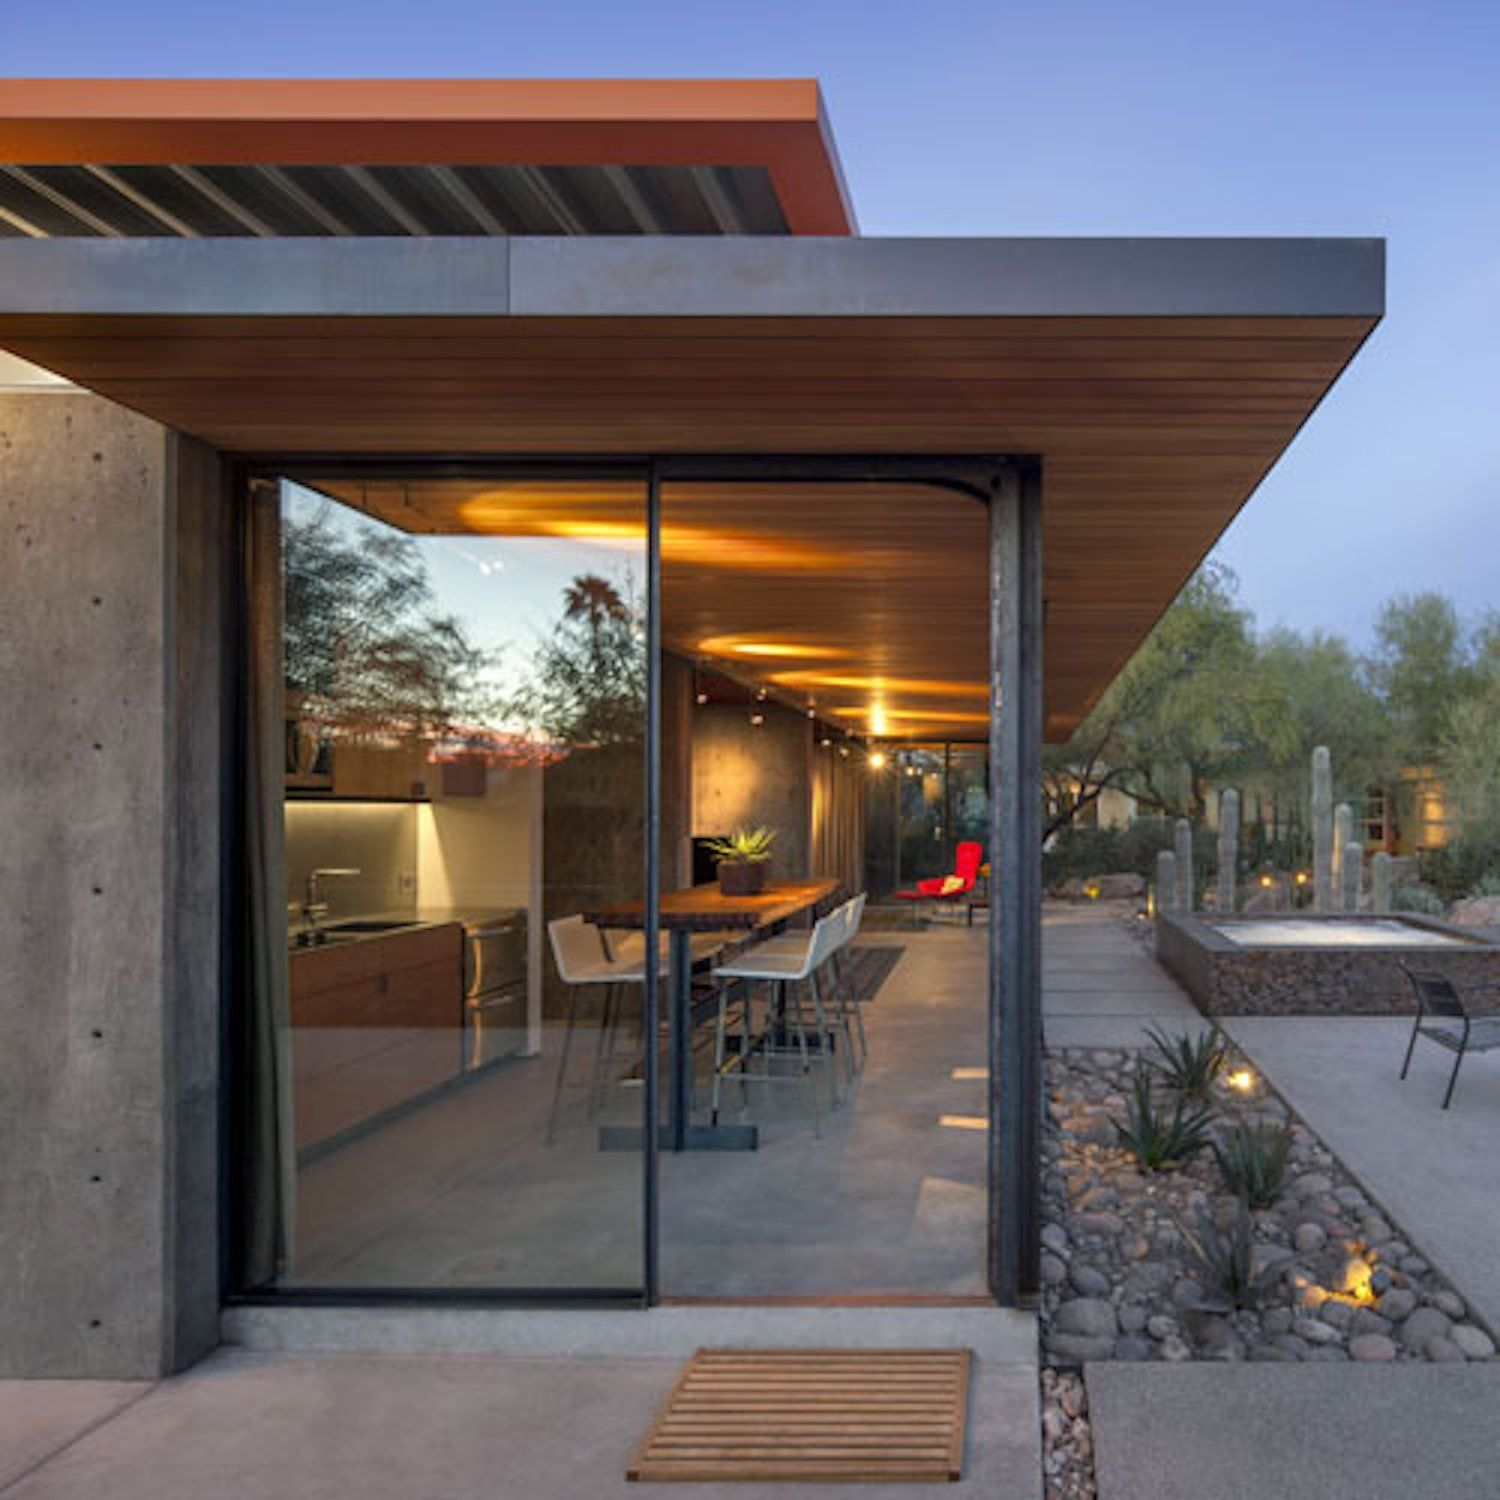 Tagged doors exterior metal and sliding door type photo 4 of 12 in an old horse barn is repurposed as a chic desert guesthouse